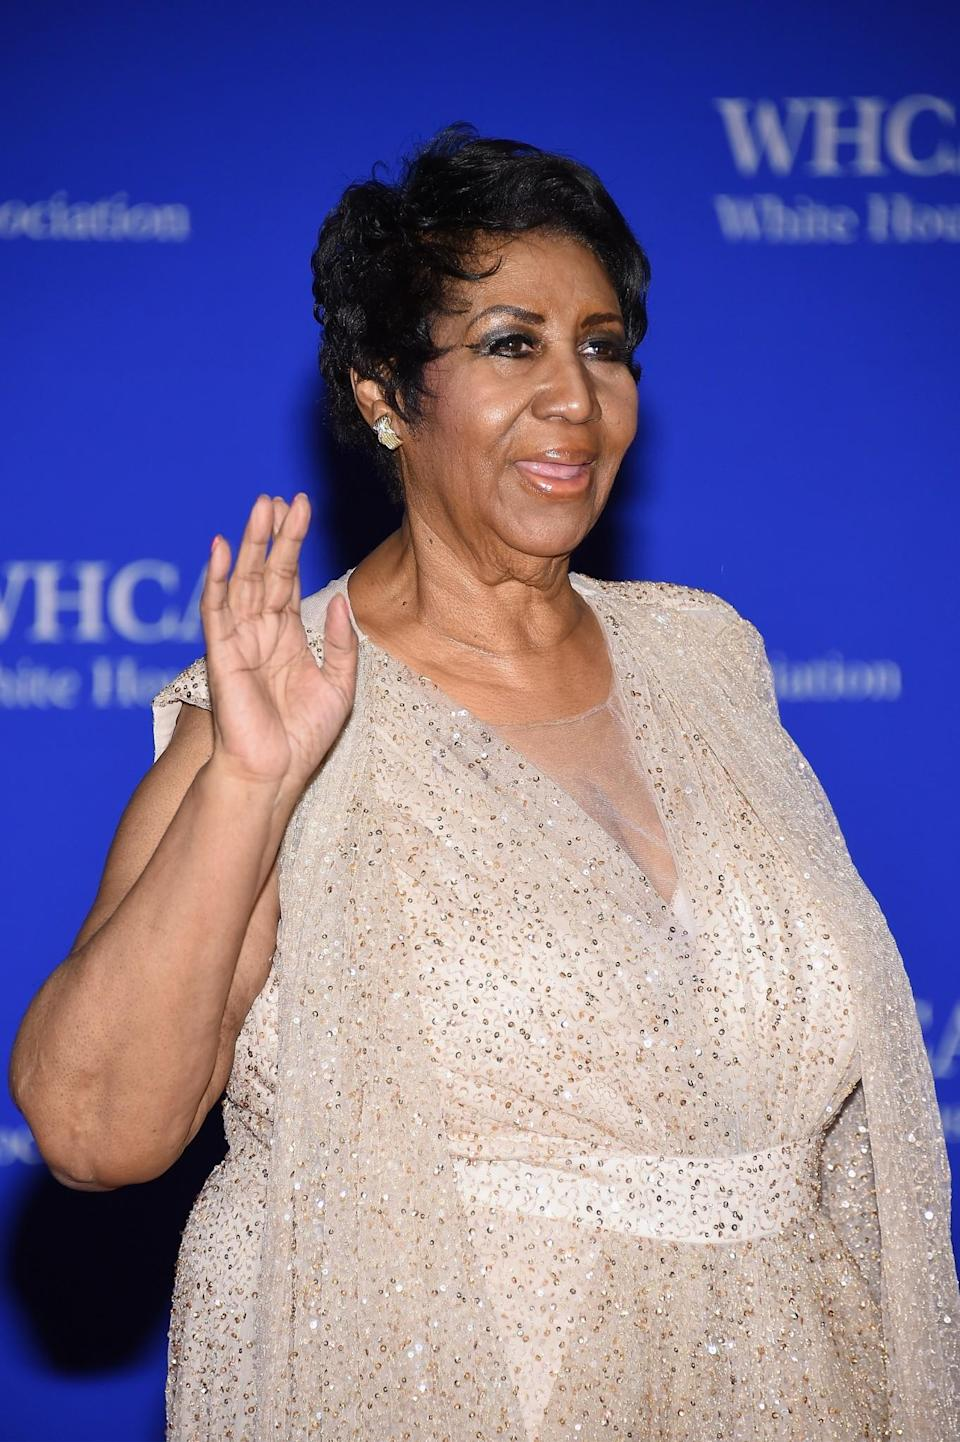 <p>The Queen of Soul, Aretha Franklin was the first woman to be inducted into the Rock and Roll Hall of Fame in 1987. Hailing from Tennessee, the singer became known for powerful hits including <i>Respect</i> and <i>I Say a Little Prayer</i>. She recorded her first tracks at the age of 14 and just kept getting bigger and better. In 2008, Aretha received her 18th Grammy, making her one of the most honoured artists in the history of the awards. <i>[Photo: Getty]</i> </p>